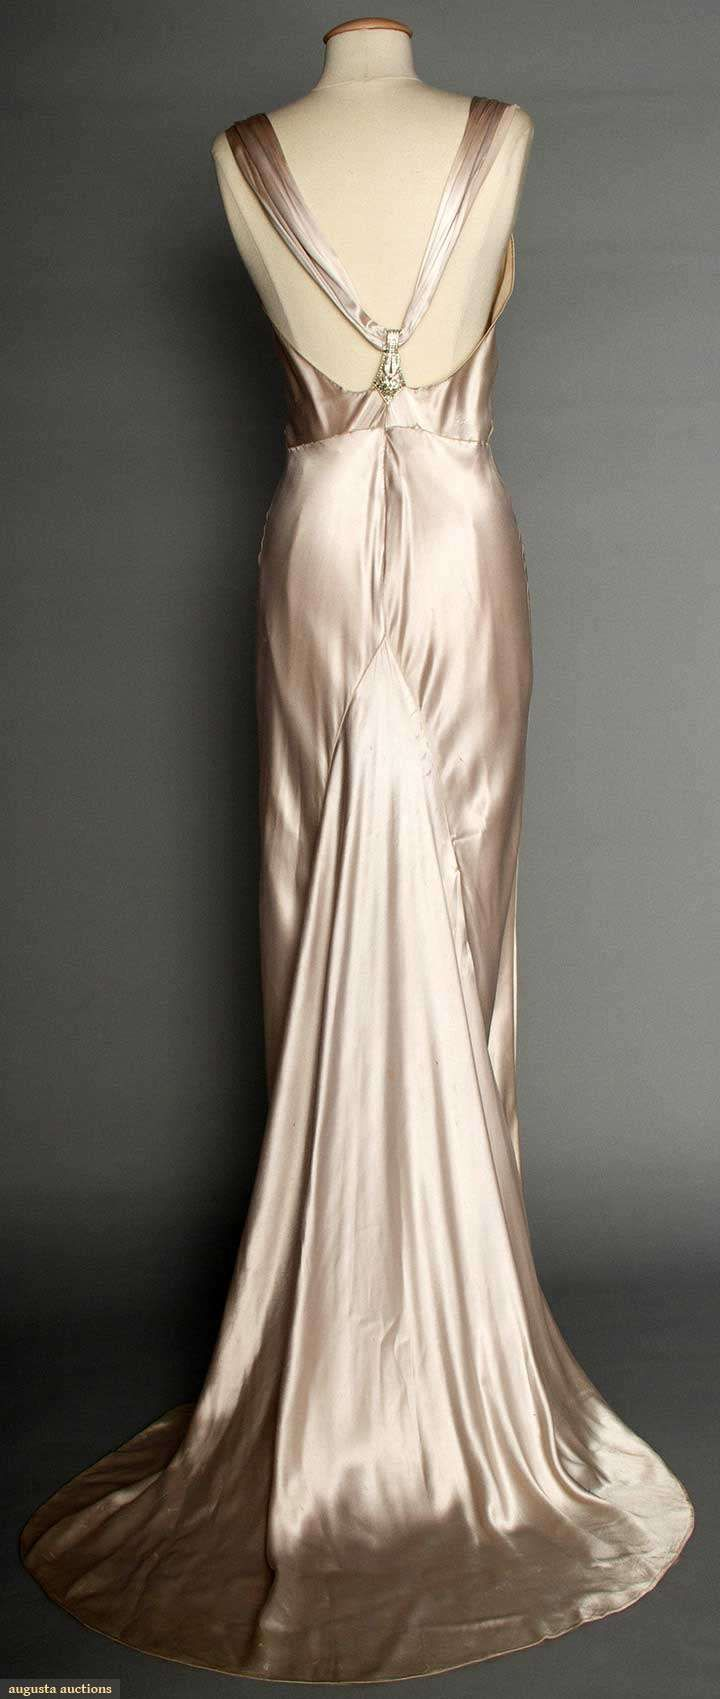 25 best vintage gowns ideas on pinterest vintage for Wedding dress 30s style